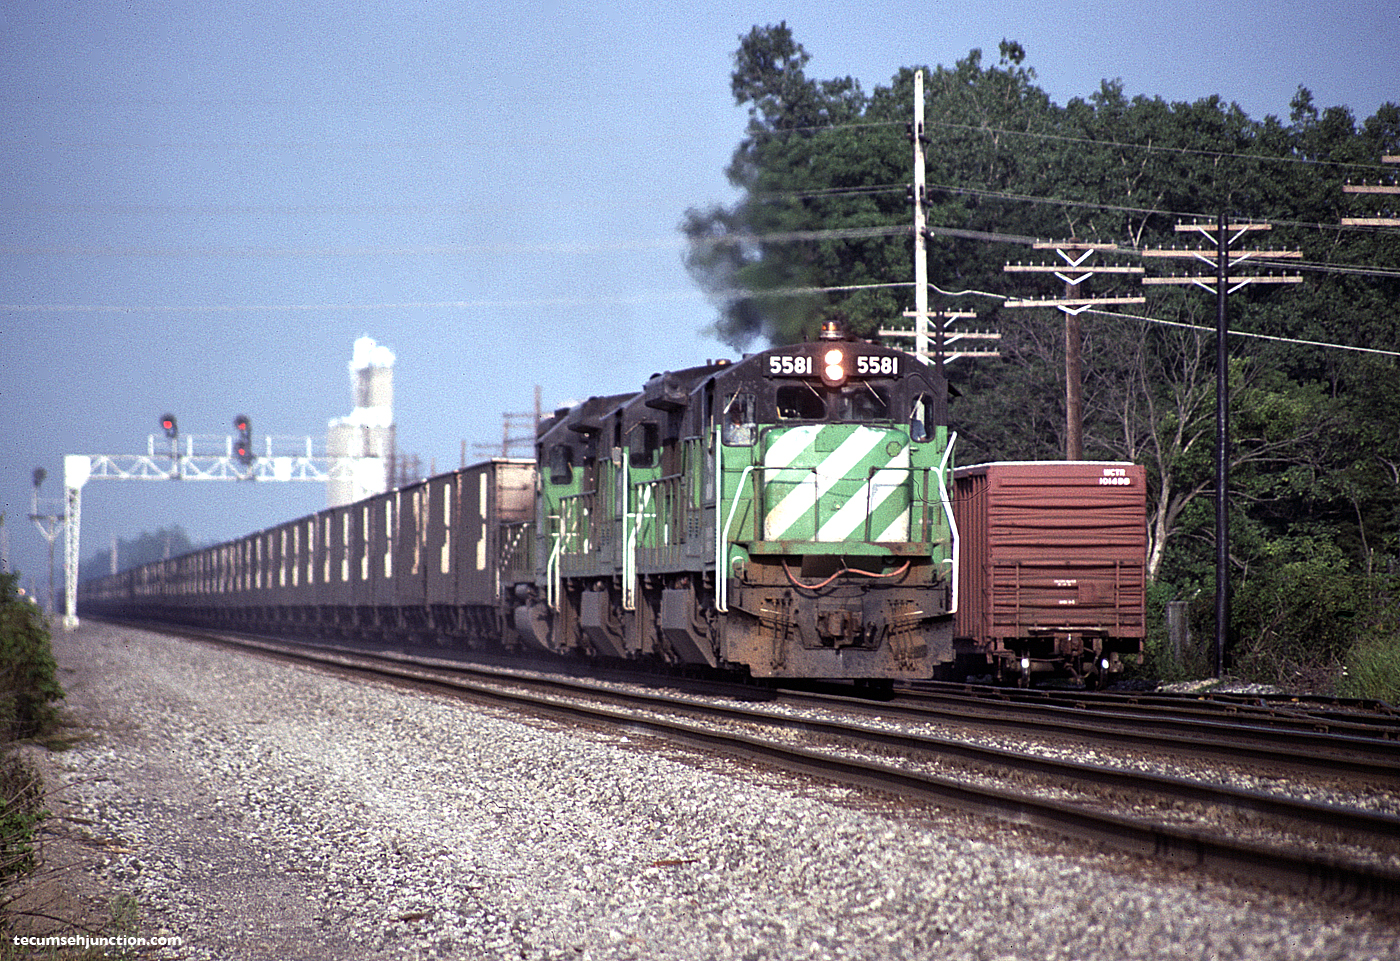 BN 5581 on a westbound train at Bryan, OH